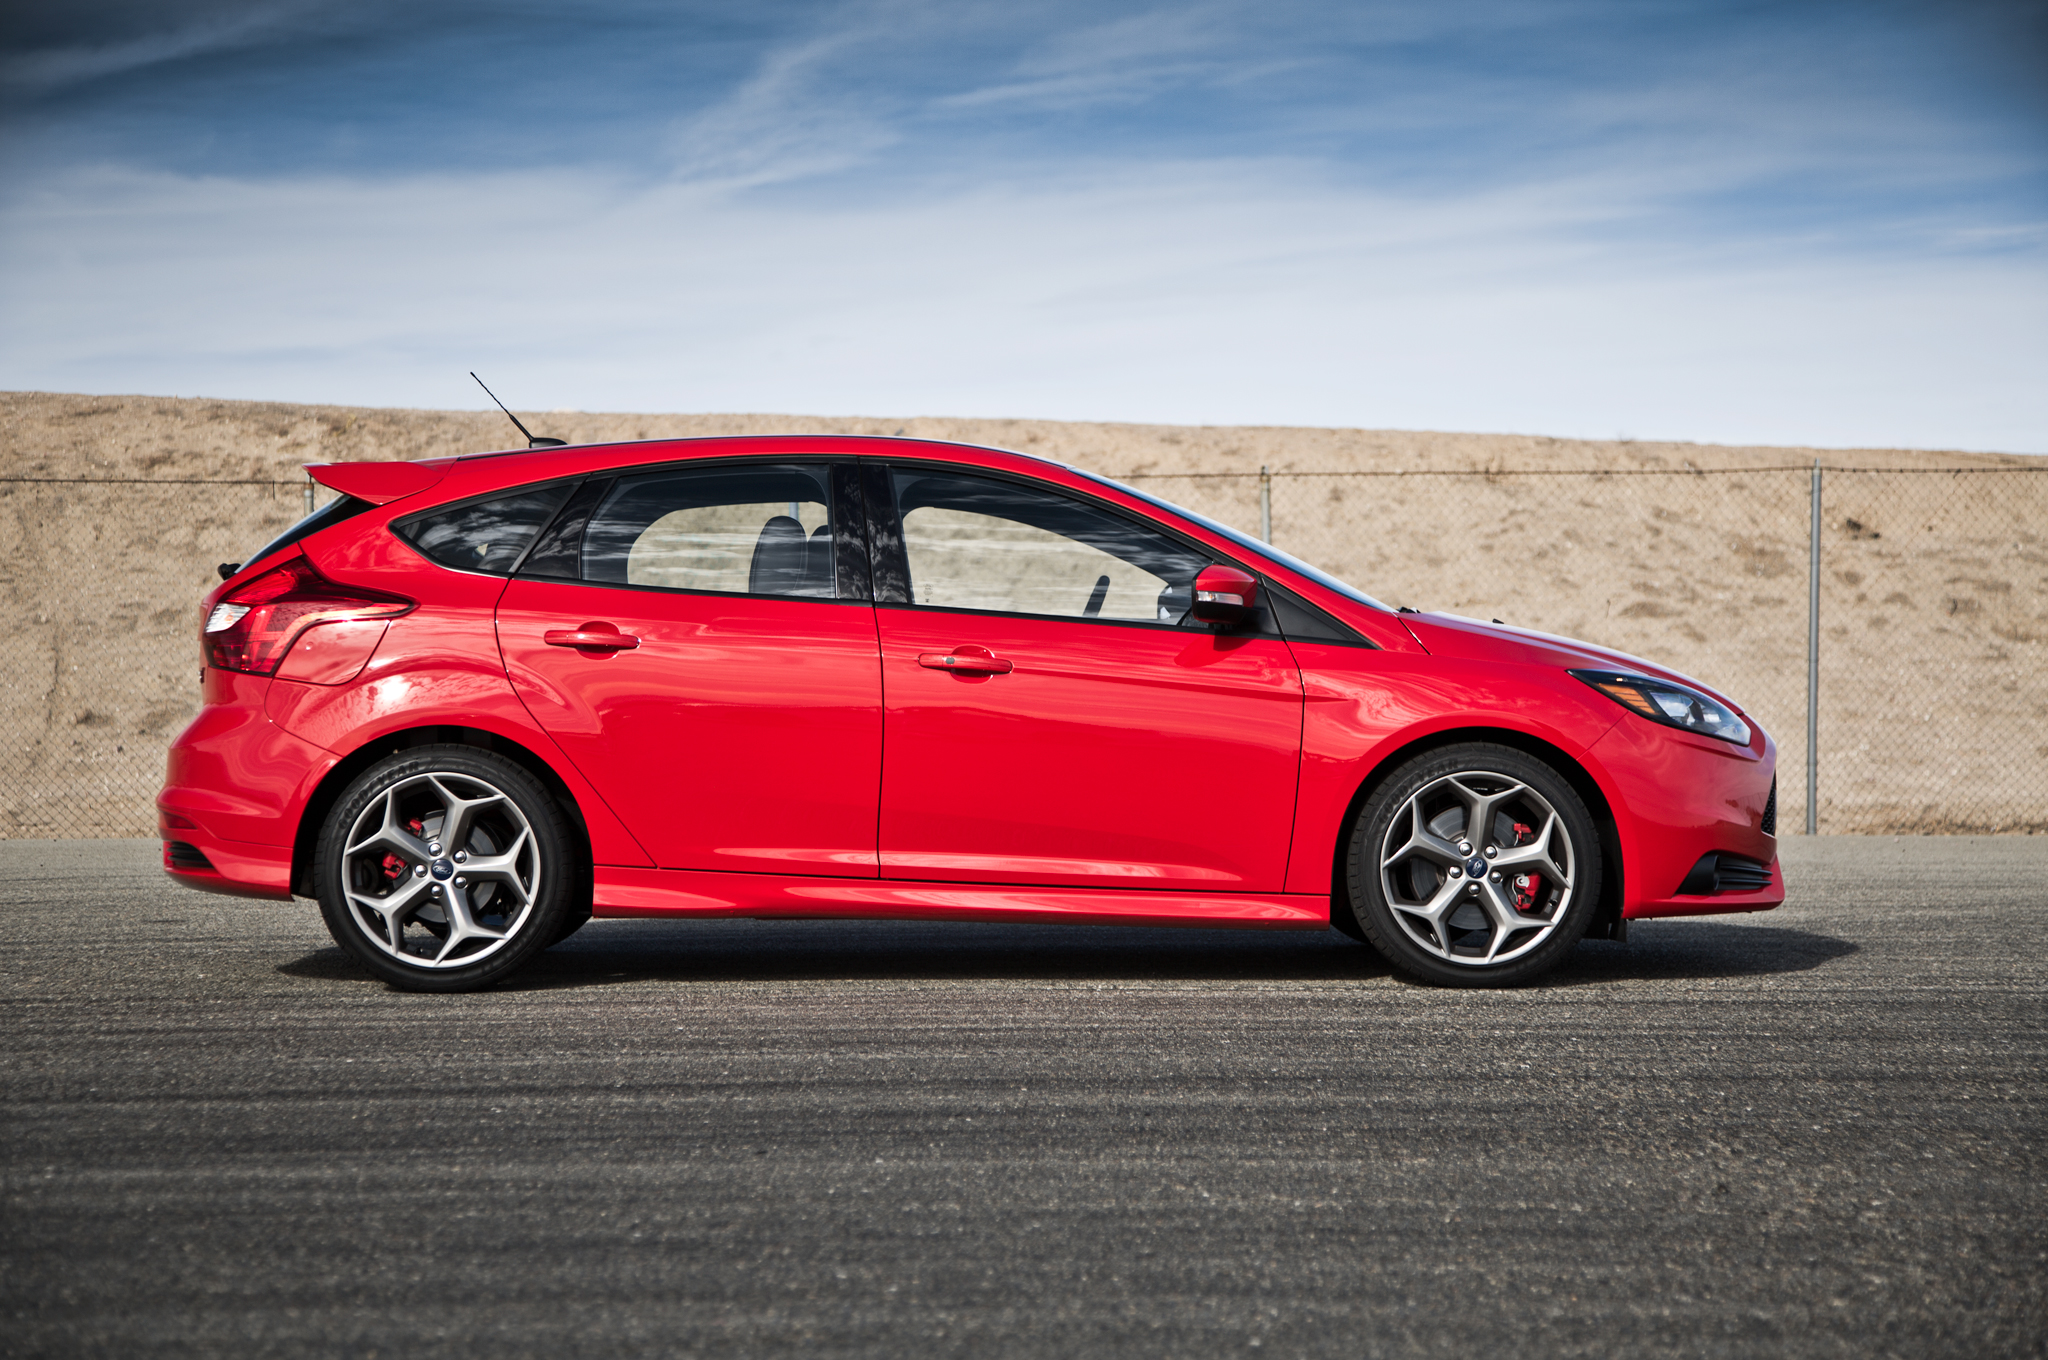 2014 ford focus st image 21